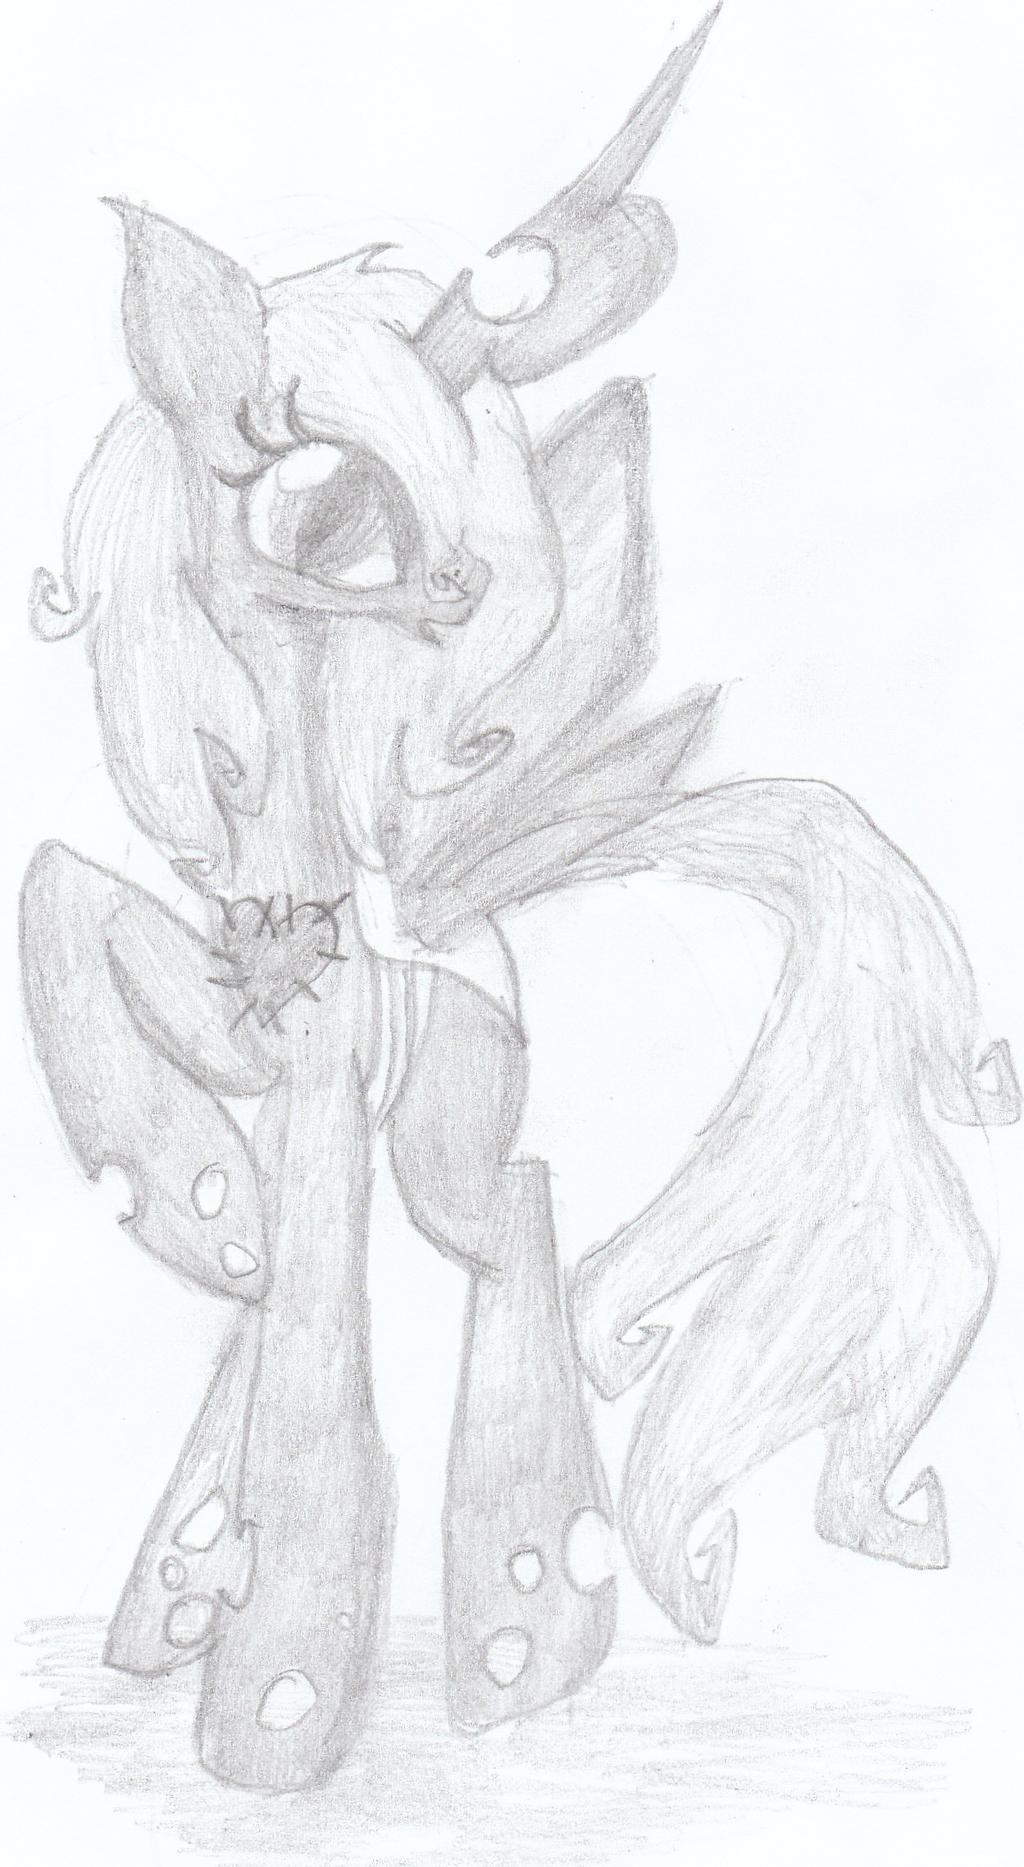 heartless_by_blue_lollypop-d5r4ct9.jpg